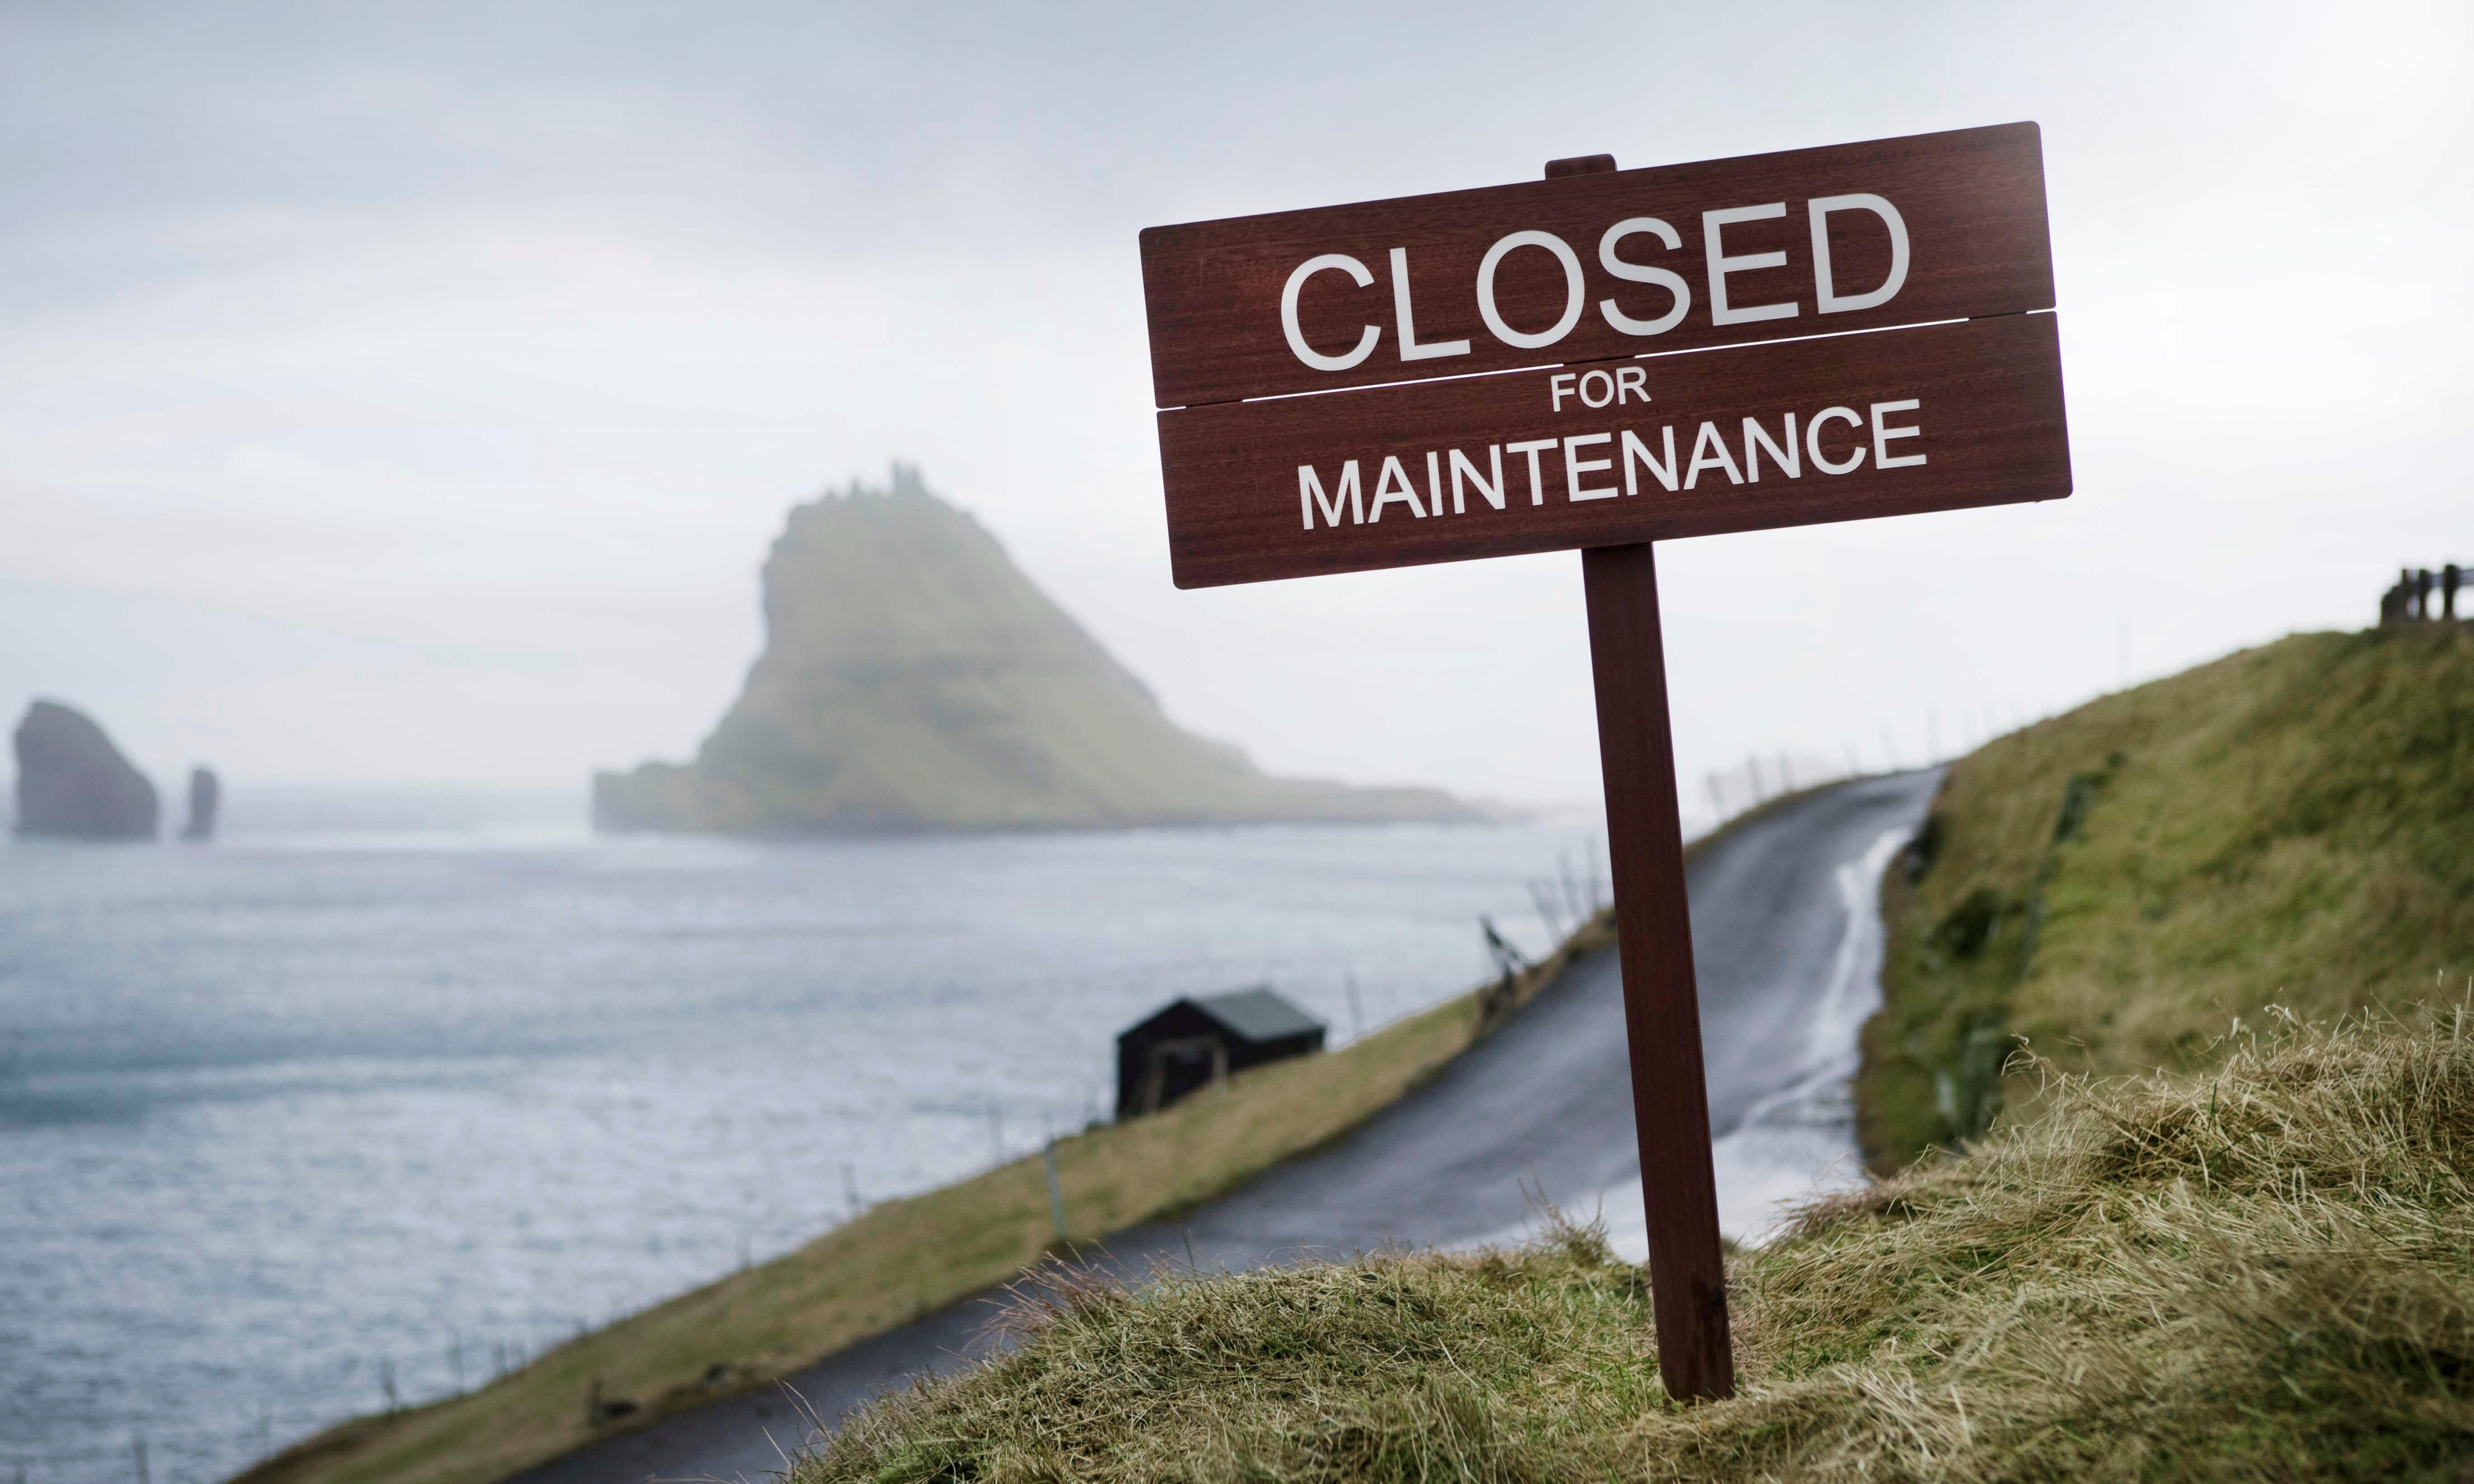 Faroe Islands: closed for repairs but open about self-promotion